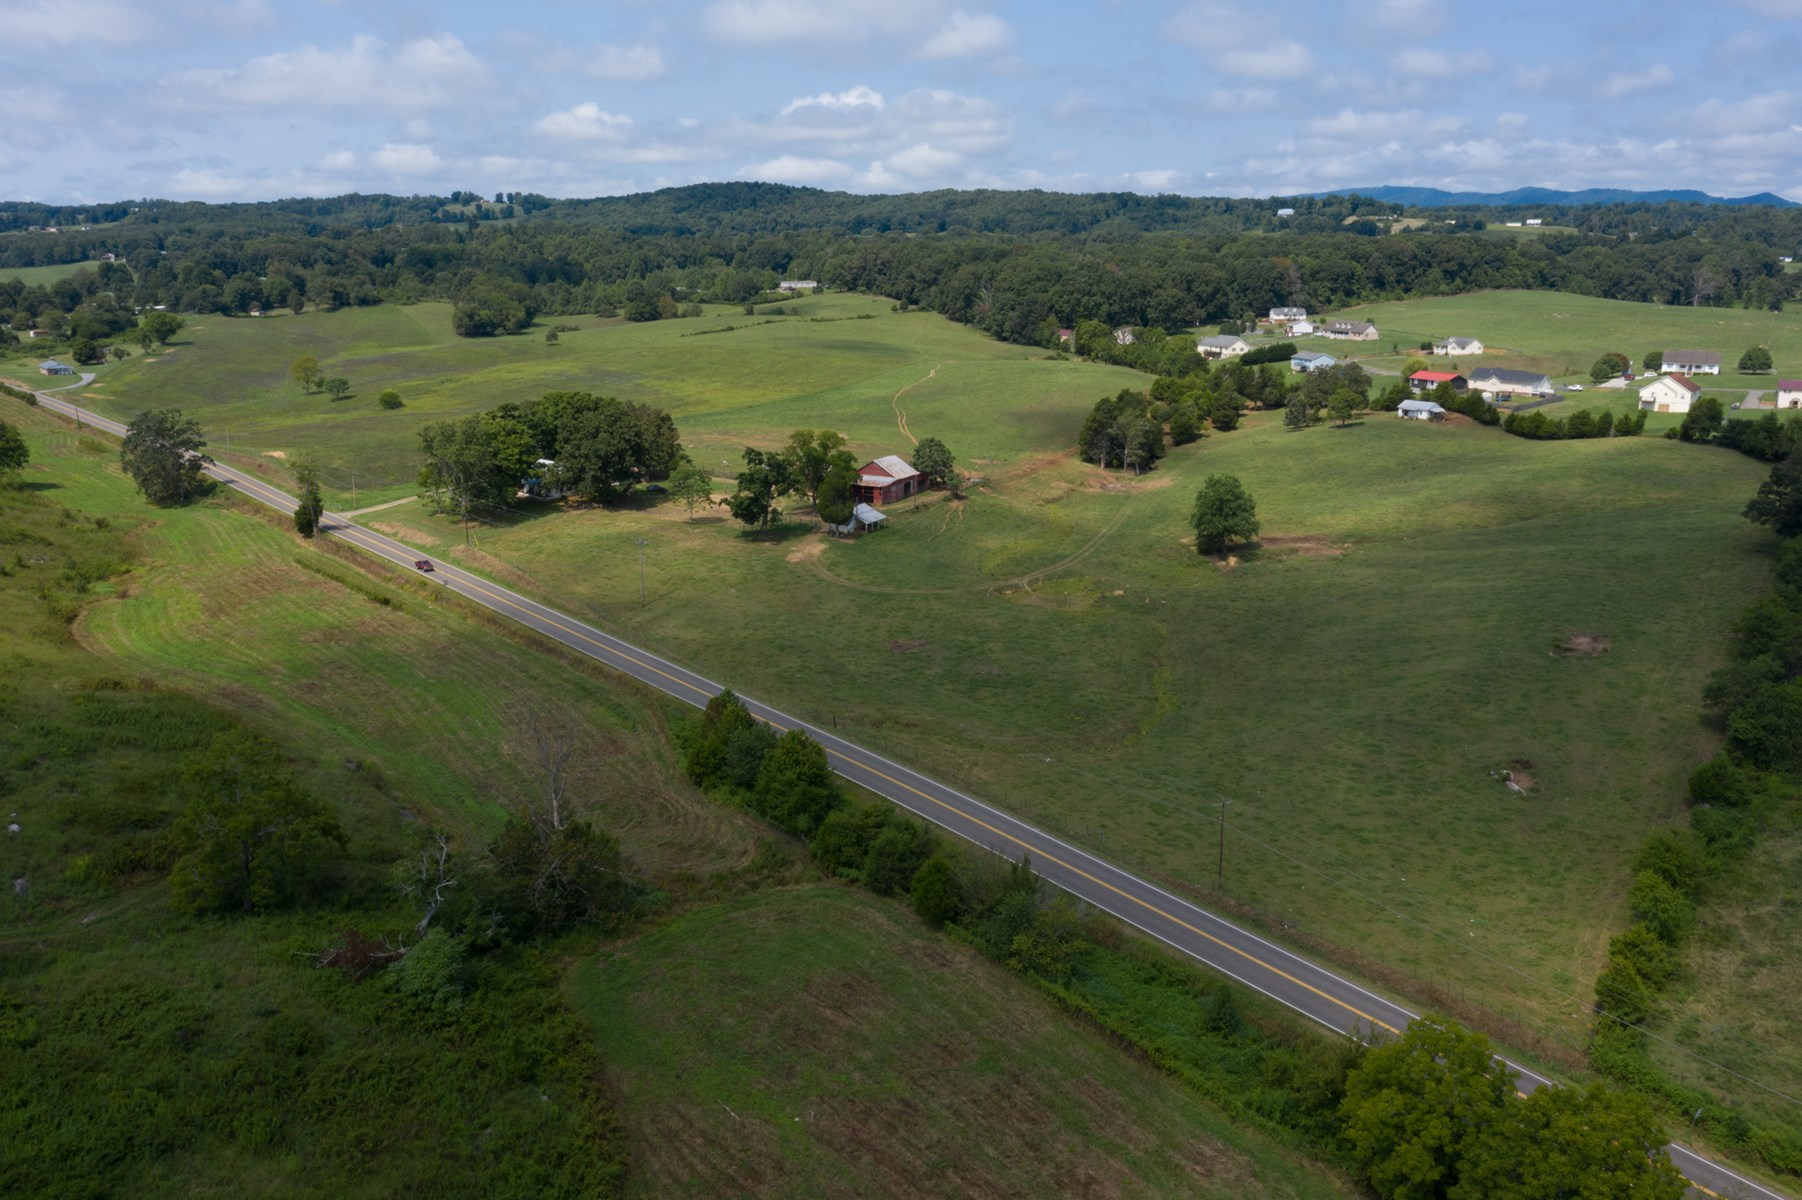 15.35 Acres Unrestricted Land in East TN For Sale